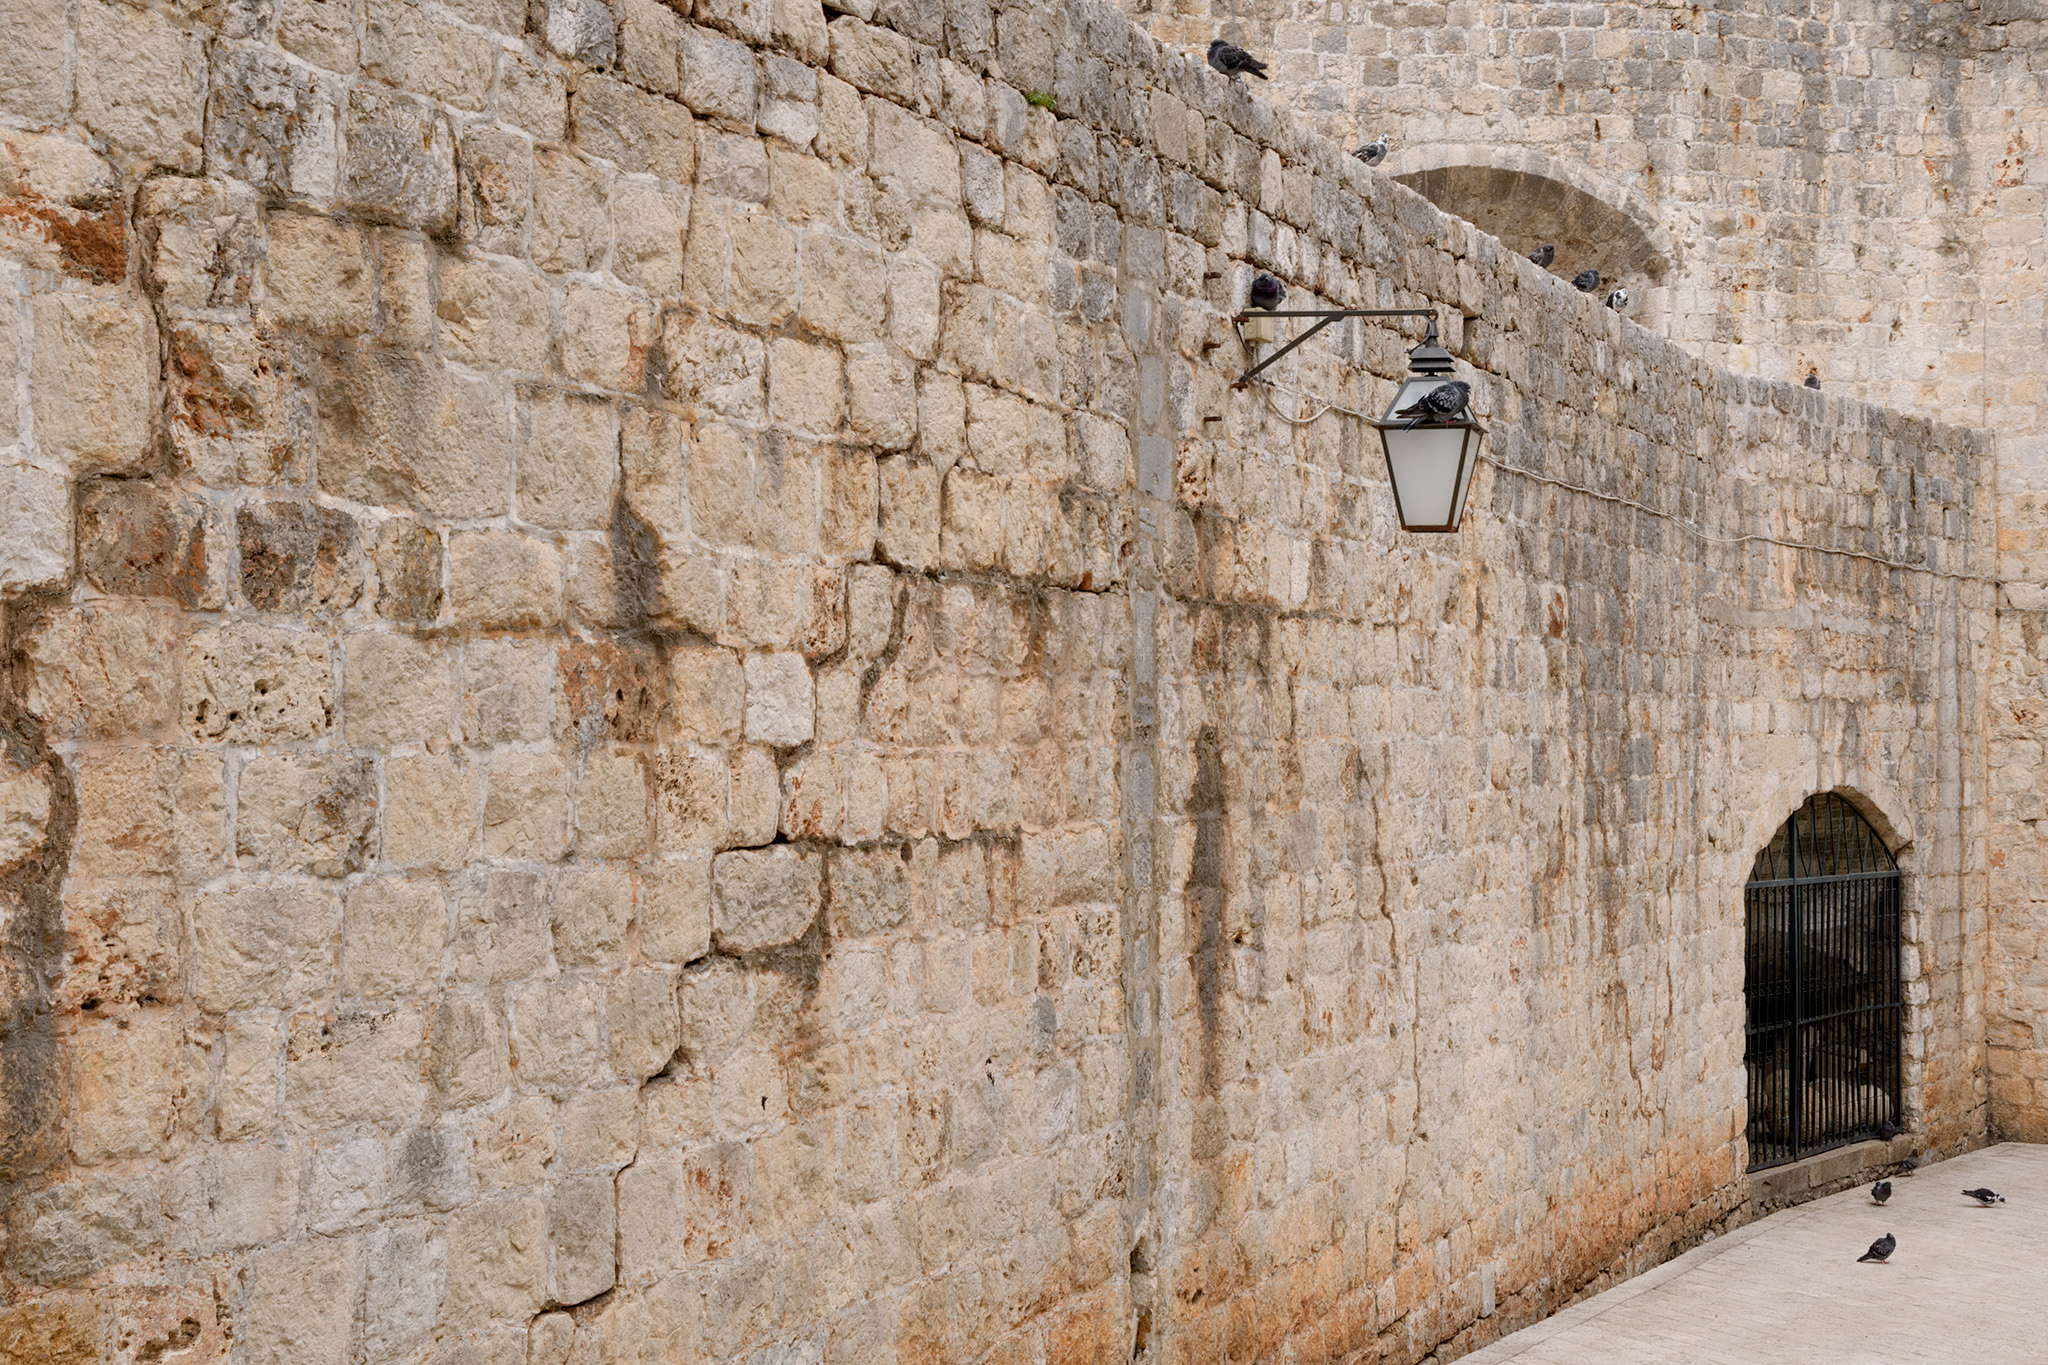 The walls of the city